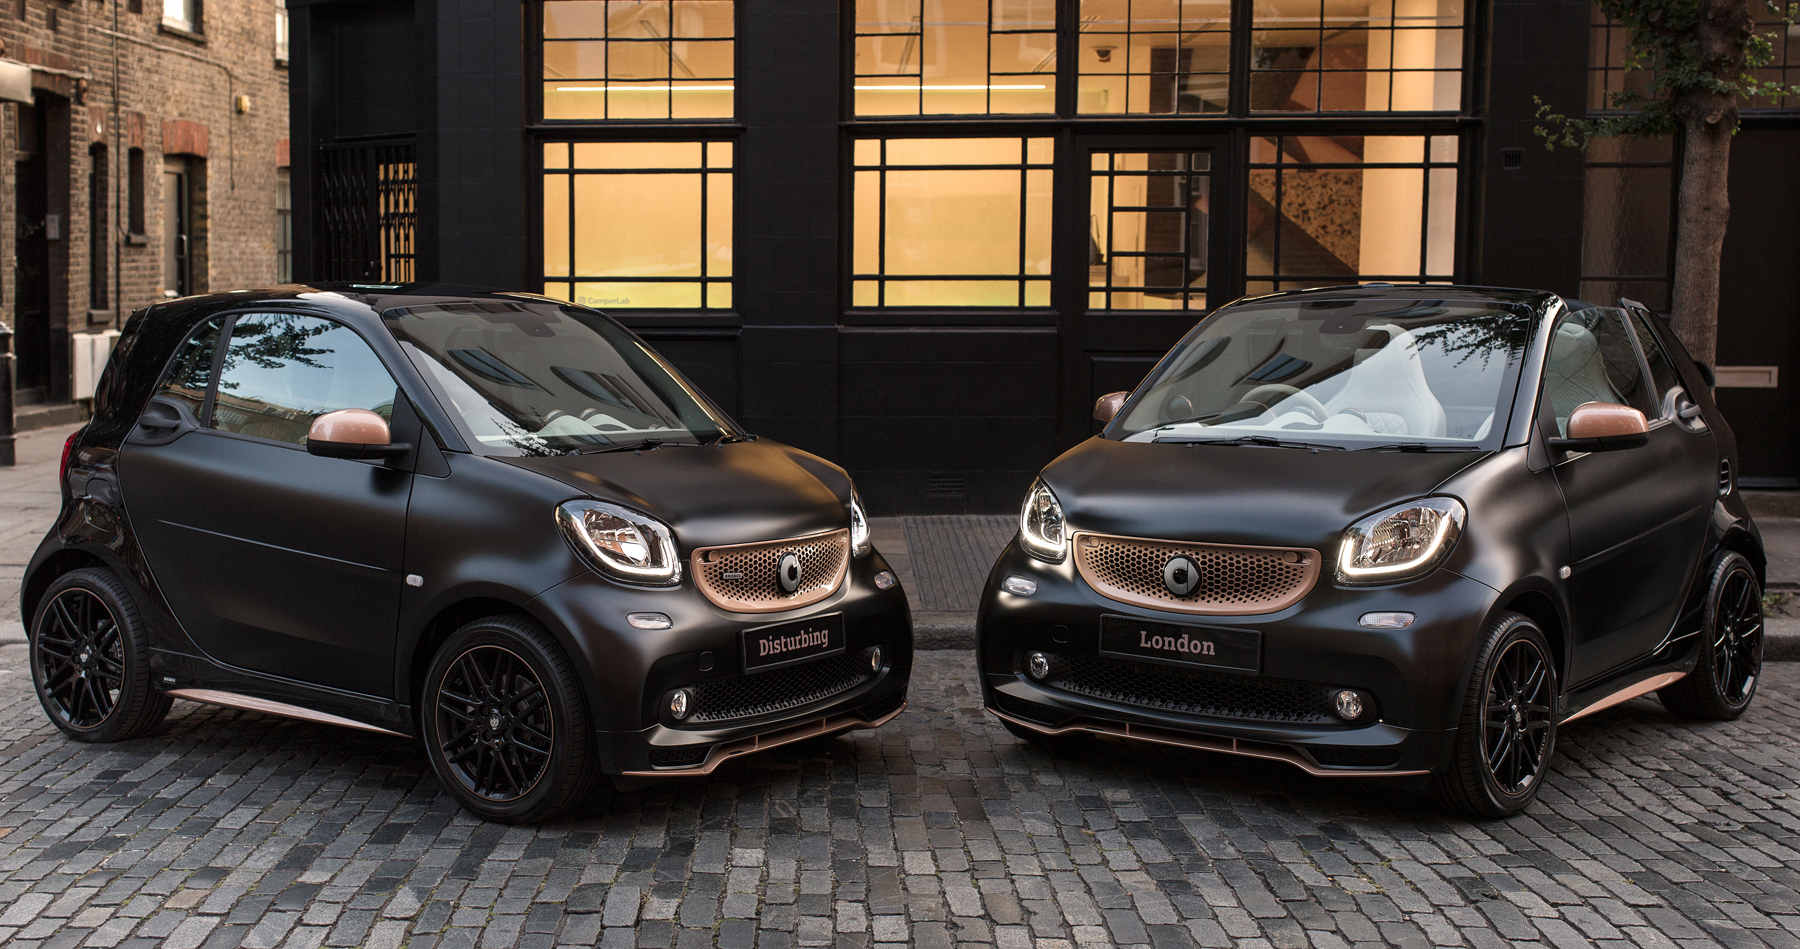 smart brabus fortwo forfour 39 disturbing london 39 special editions on sale in the uk cars uk. Black Bedroom Furniture Sets. Home Design Ideas